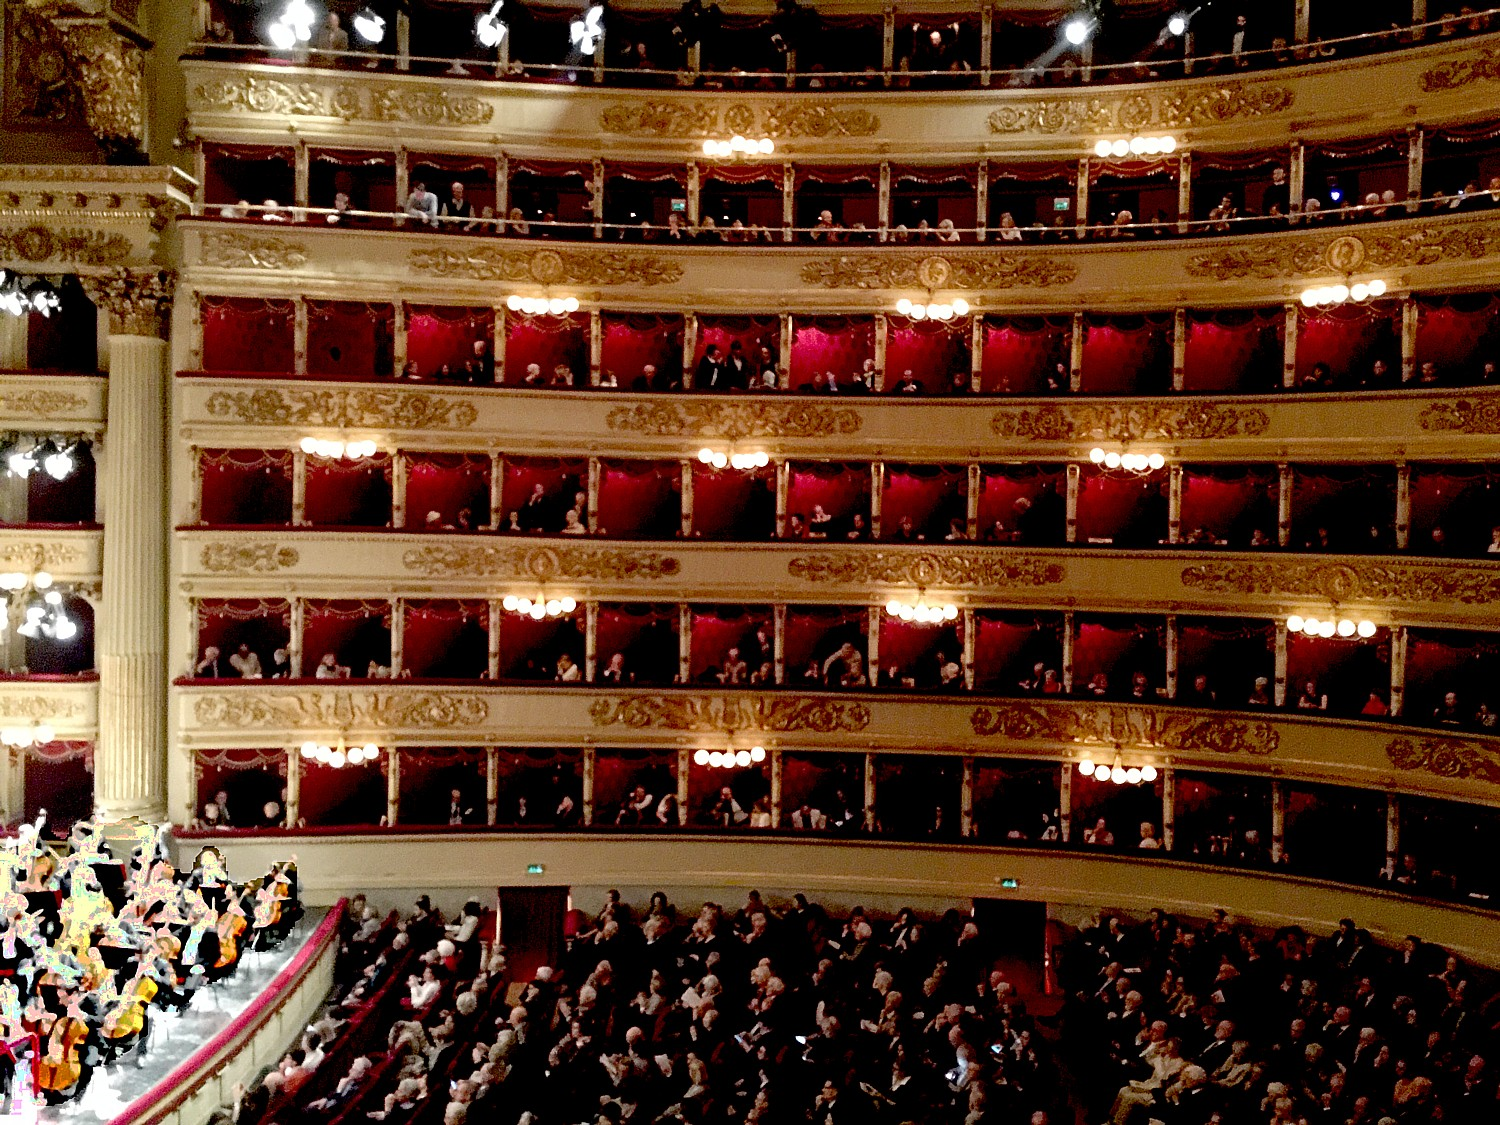 Seeing a performance at the famed La Scala theater in Milan, Italy, is a grand experience that transports you back to the Belle Epoque. Designed by Giuseppe Piermarini, the theater opened in 1778 (photo by Leiberman-Nemett)